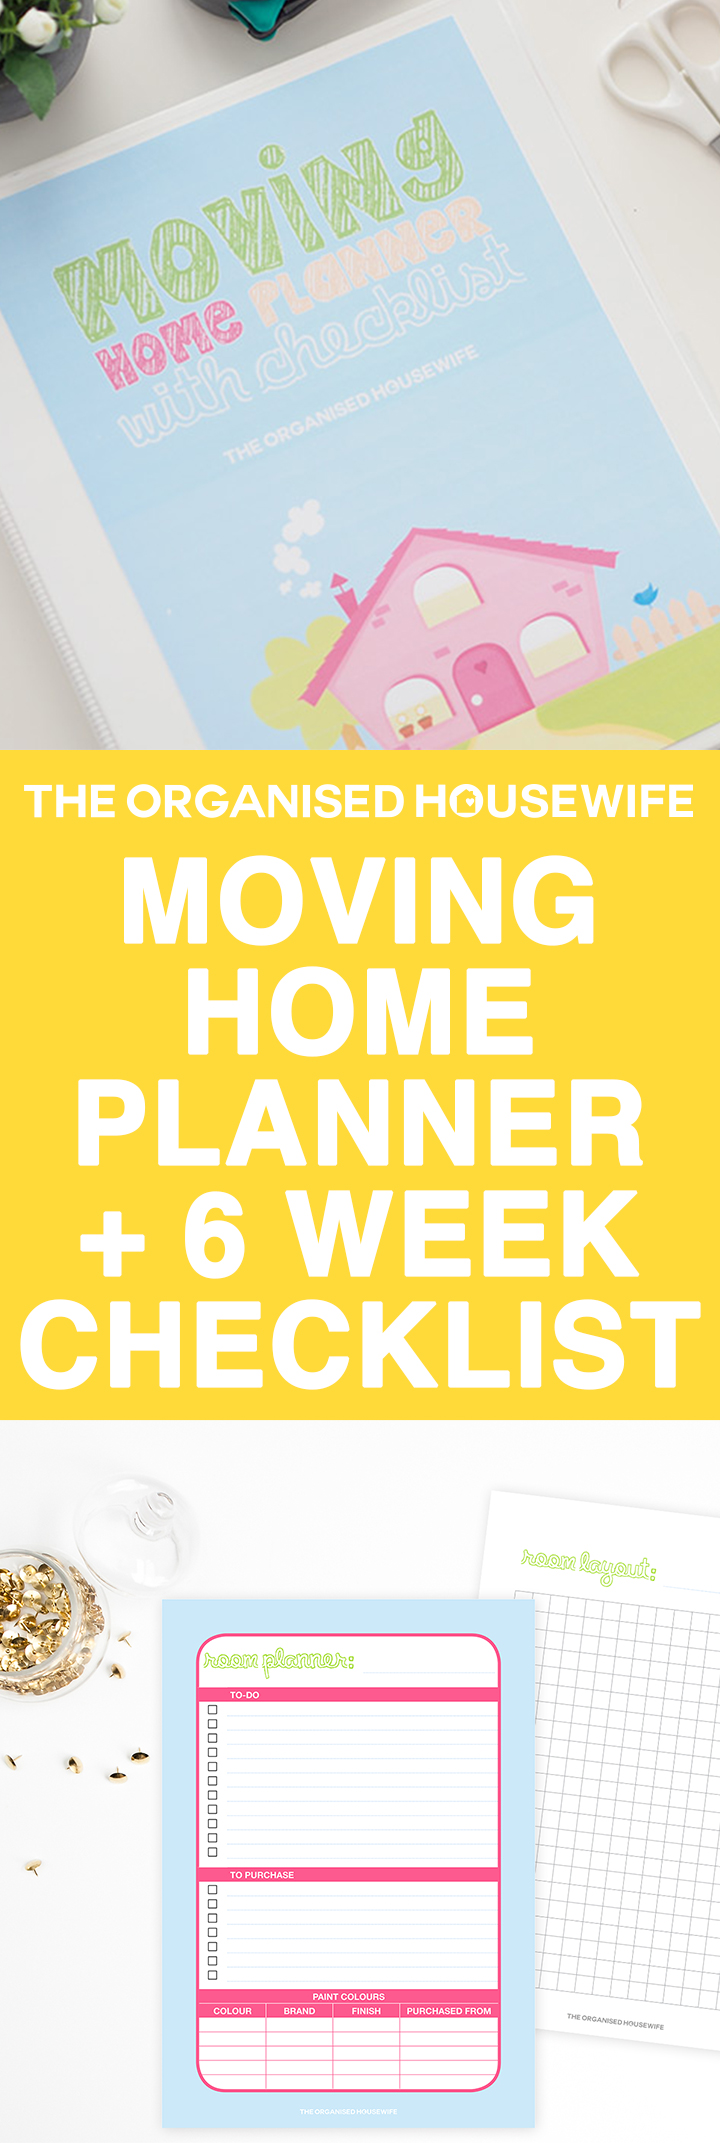 Wanting to create your next move as stress free as possible? This helpful moving planner will help you organise your move, with checklists for all elements of moving, you'll find everything you need to eliminate the overwhelm and be able to focus on being ready and stress free for the day you move house.